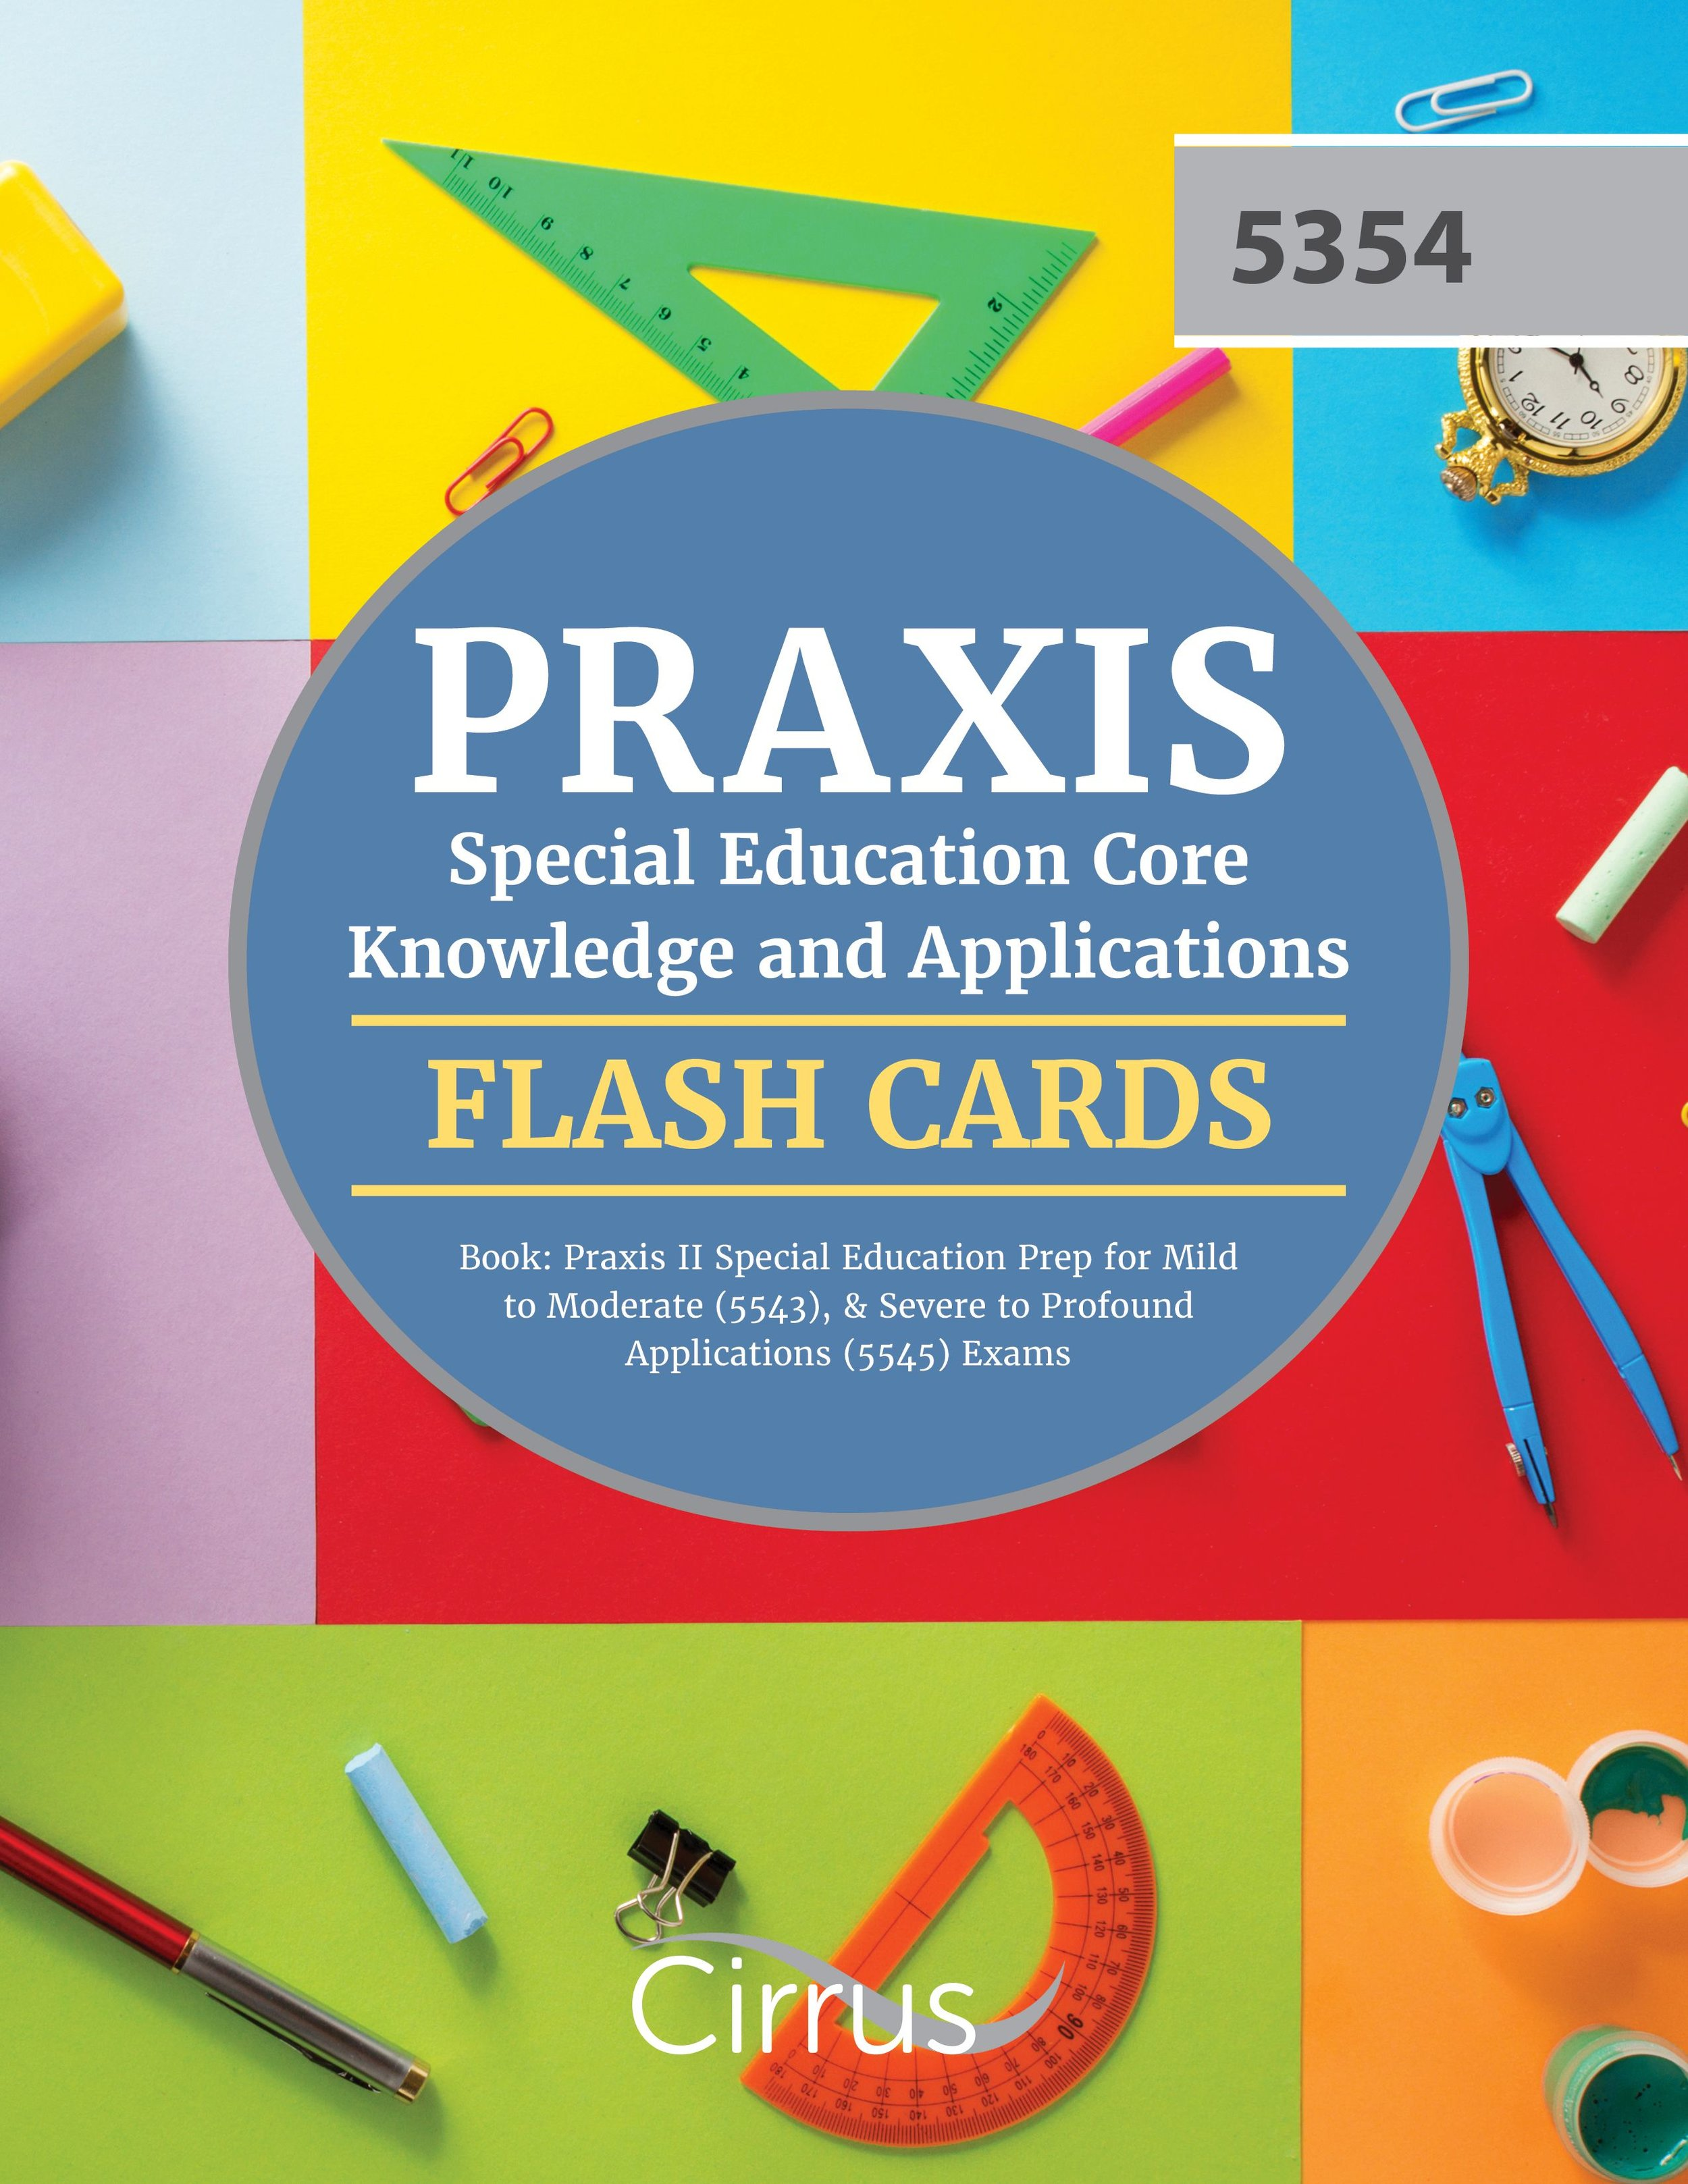 Praxis Special Education Core Knowledge and Applications Flash Cards Book